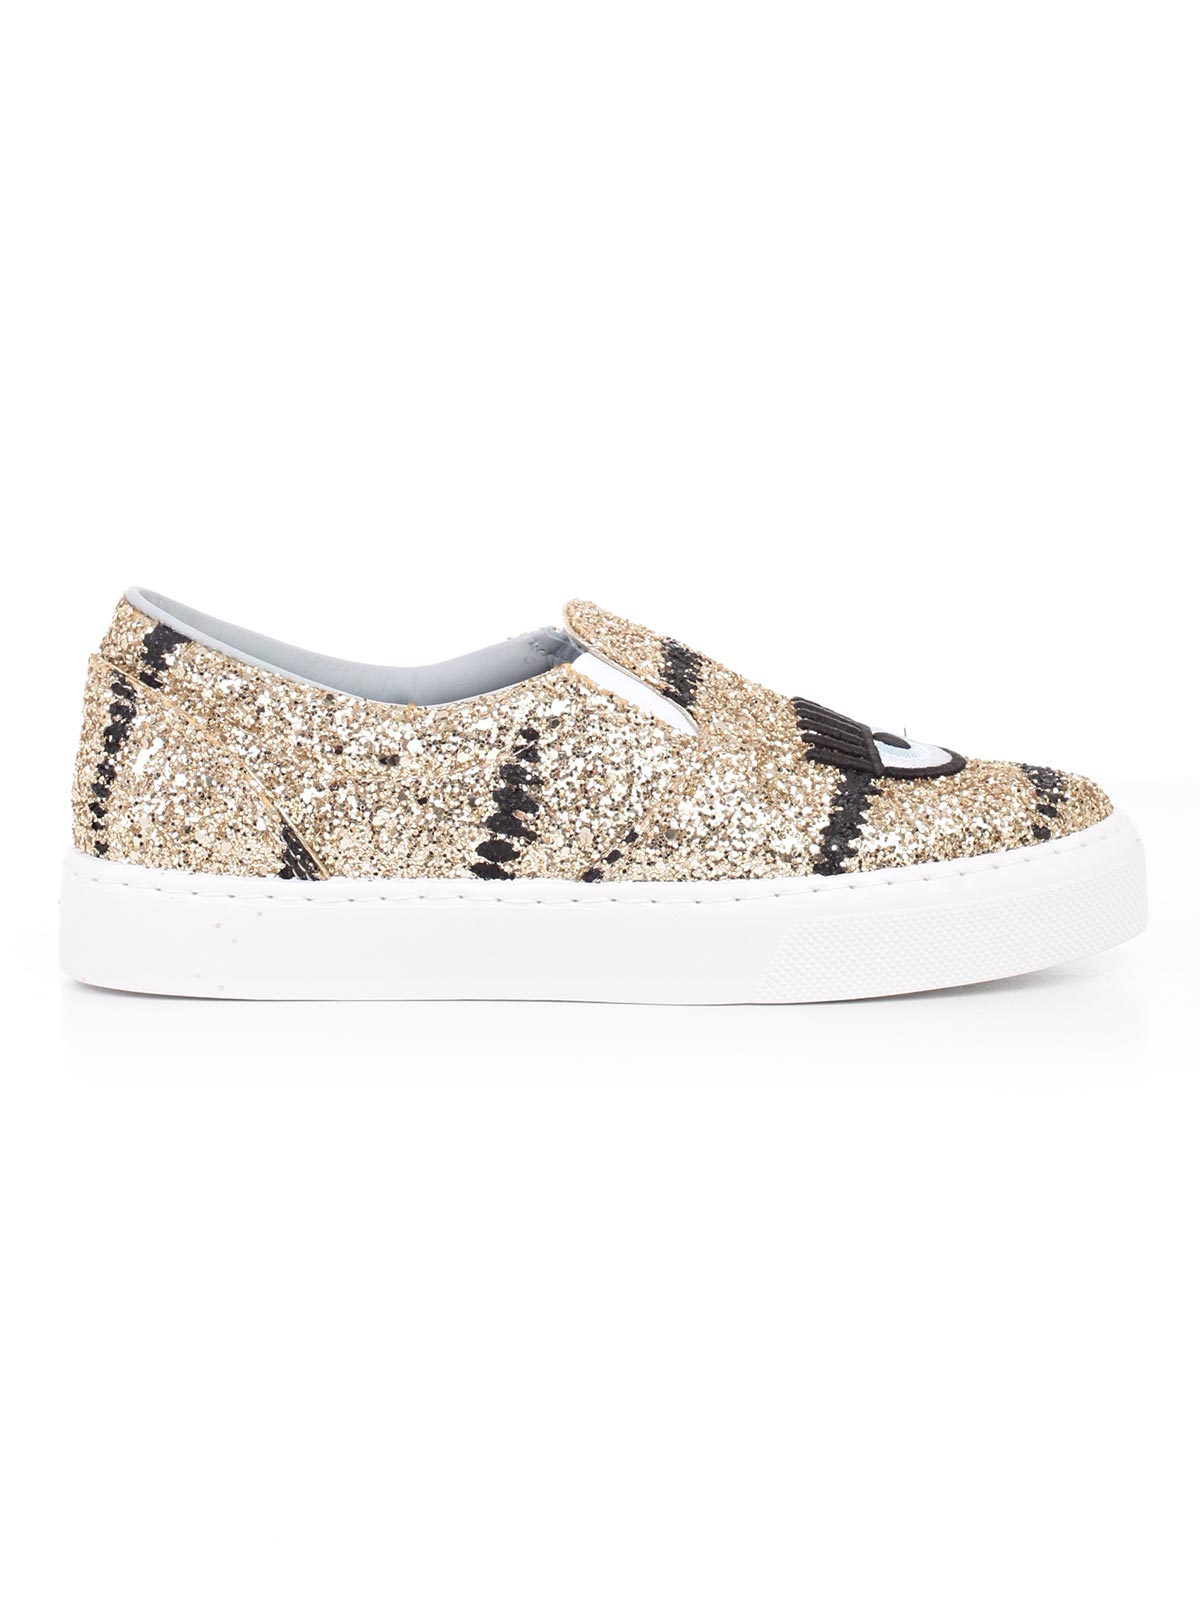 Picture of CHIARA FERRAGNI  FOOTWEAR SCARPA SLIP ON